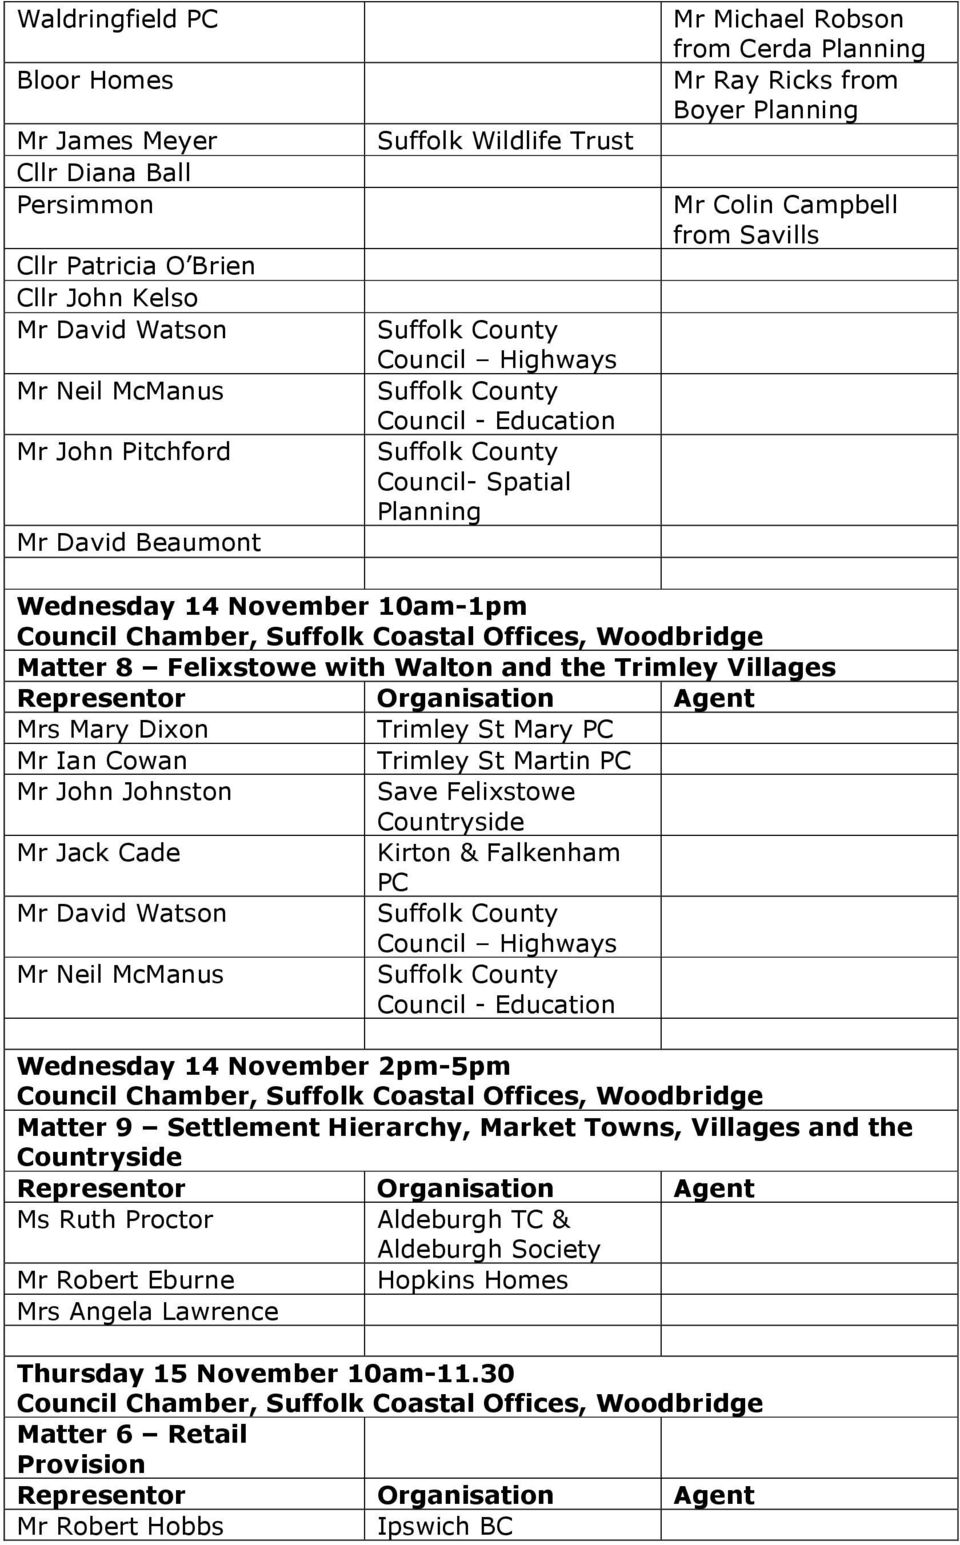 Felixstowe Mr Jack Cade Mr David Watson Mr Neil McManus Council - Education Wednesday 14 November 2pm-5pm Matter 9 Settlement Hierarchy, Market